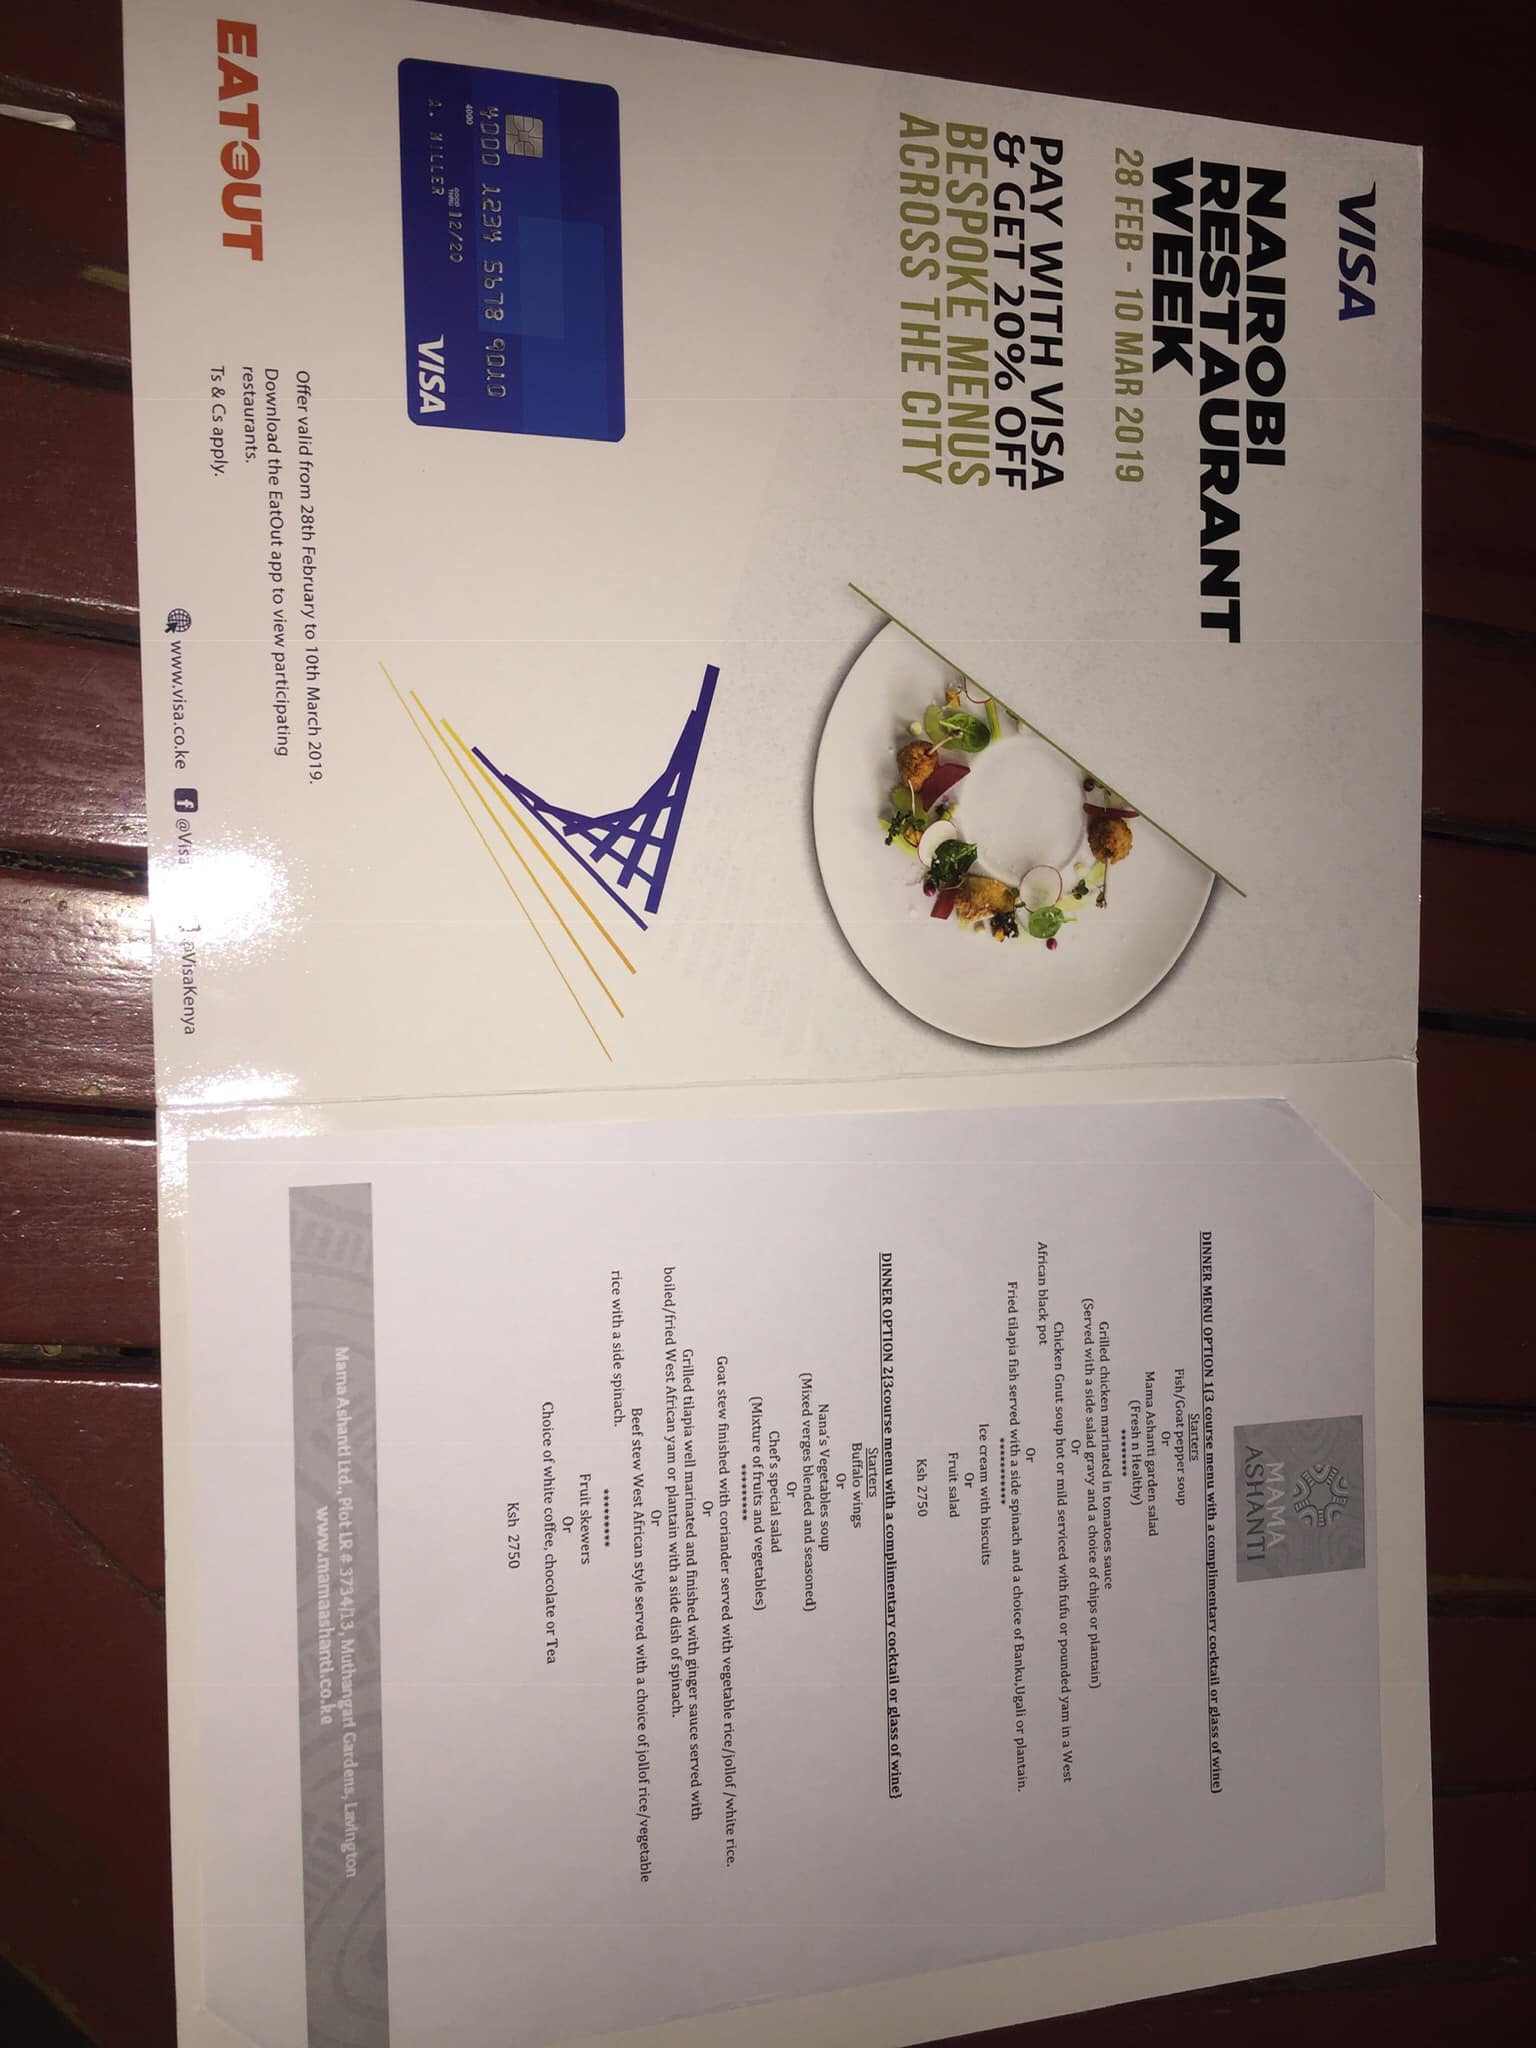 I'm a sucker for Restaurant Week in NY so I was pleasantly surprised that Nairobi also has one. Yo! Freetown/Accra we need to make RW a thing.